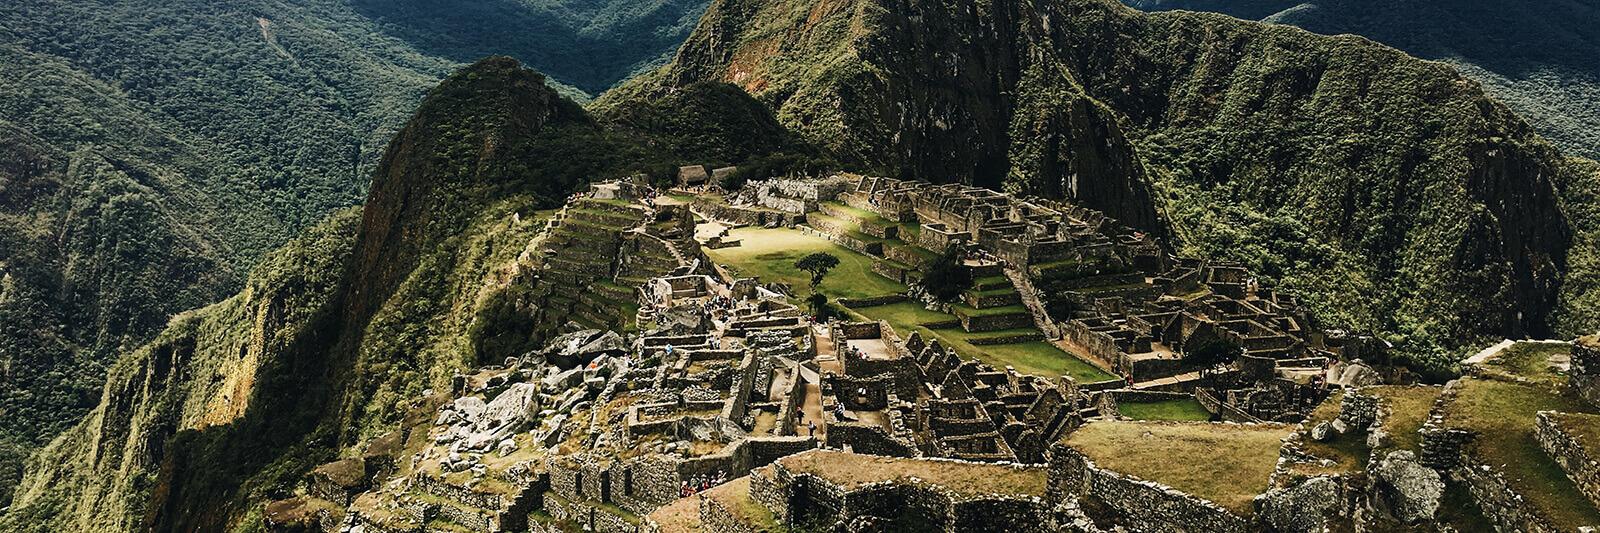 Machu Picchu, high up in the mountains of Peru